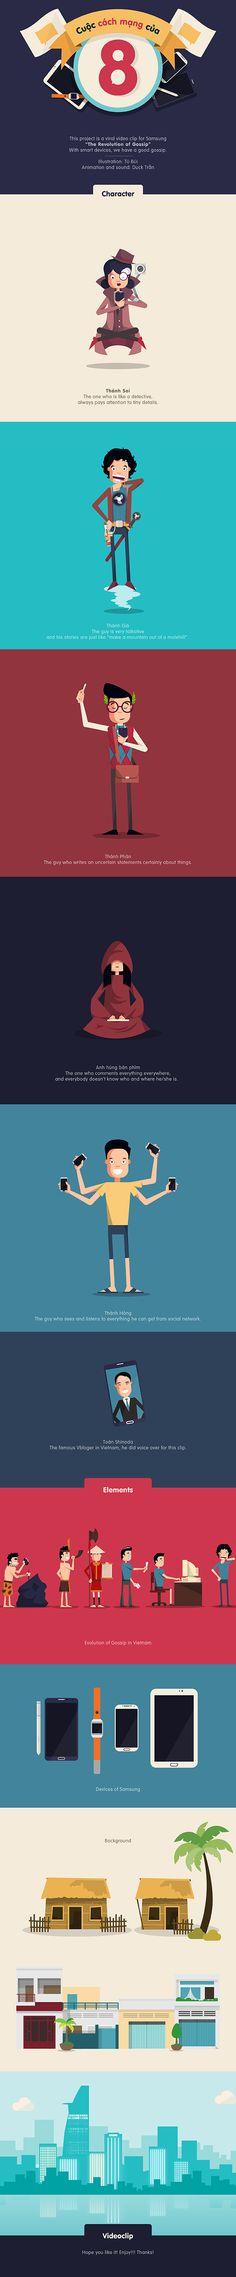 The Revolution of Gossip - Samsung's viral clip by Tú Bùi, via Behance